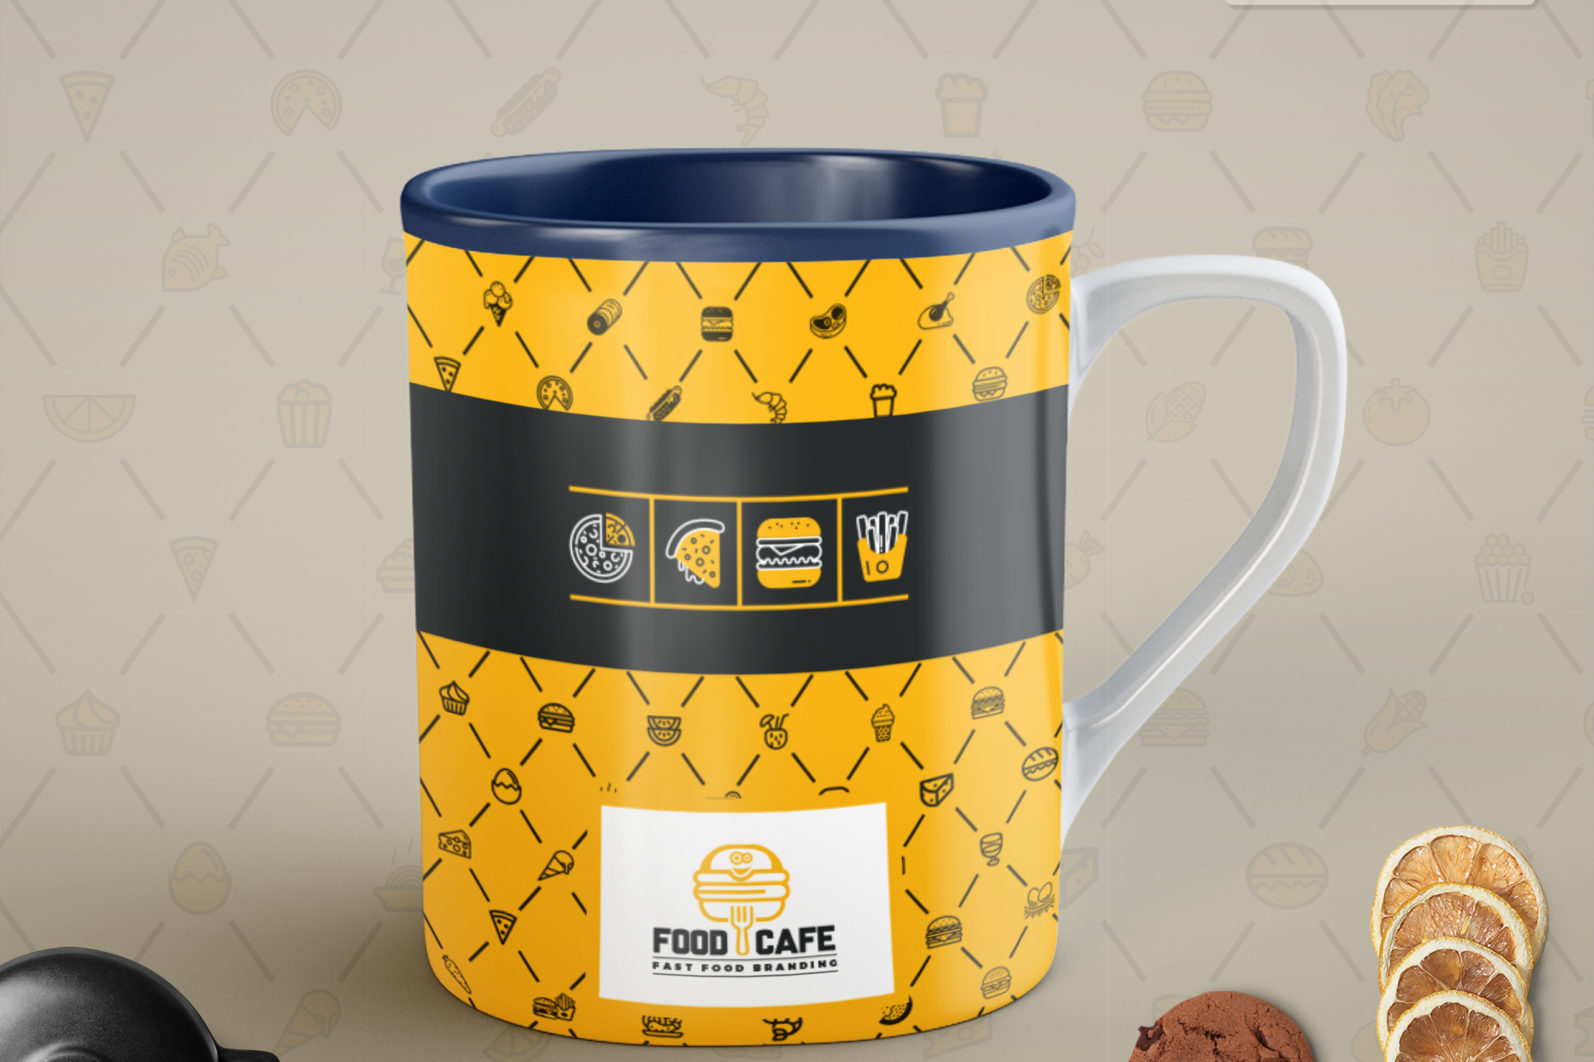 Mega Stationery Branding Identity for Fast Food and Restaurant - 22 Mug Coffe Cup -